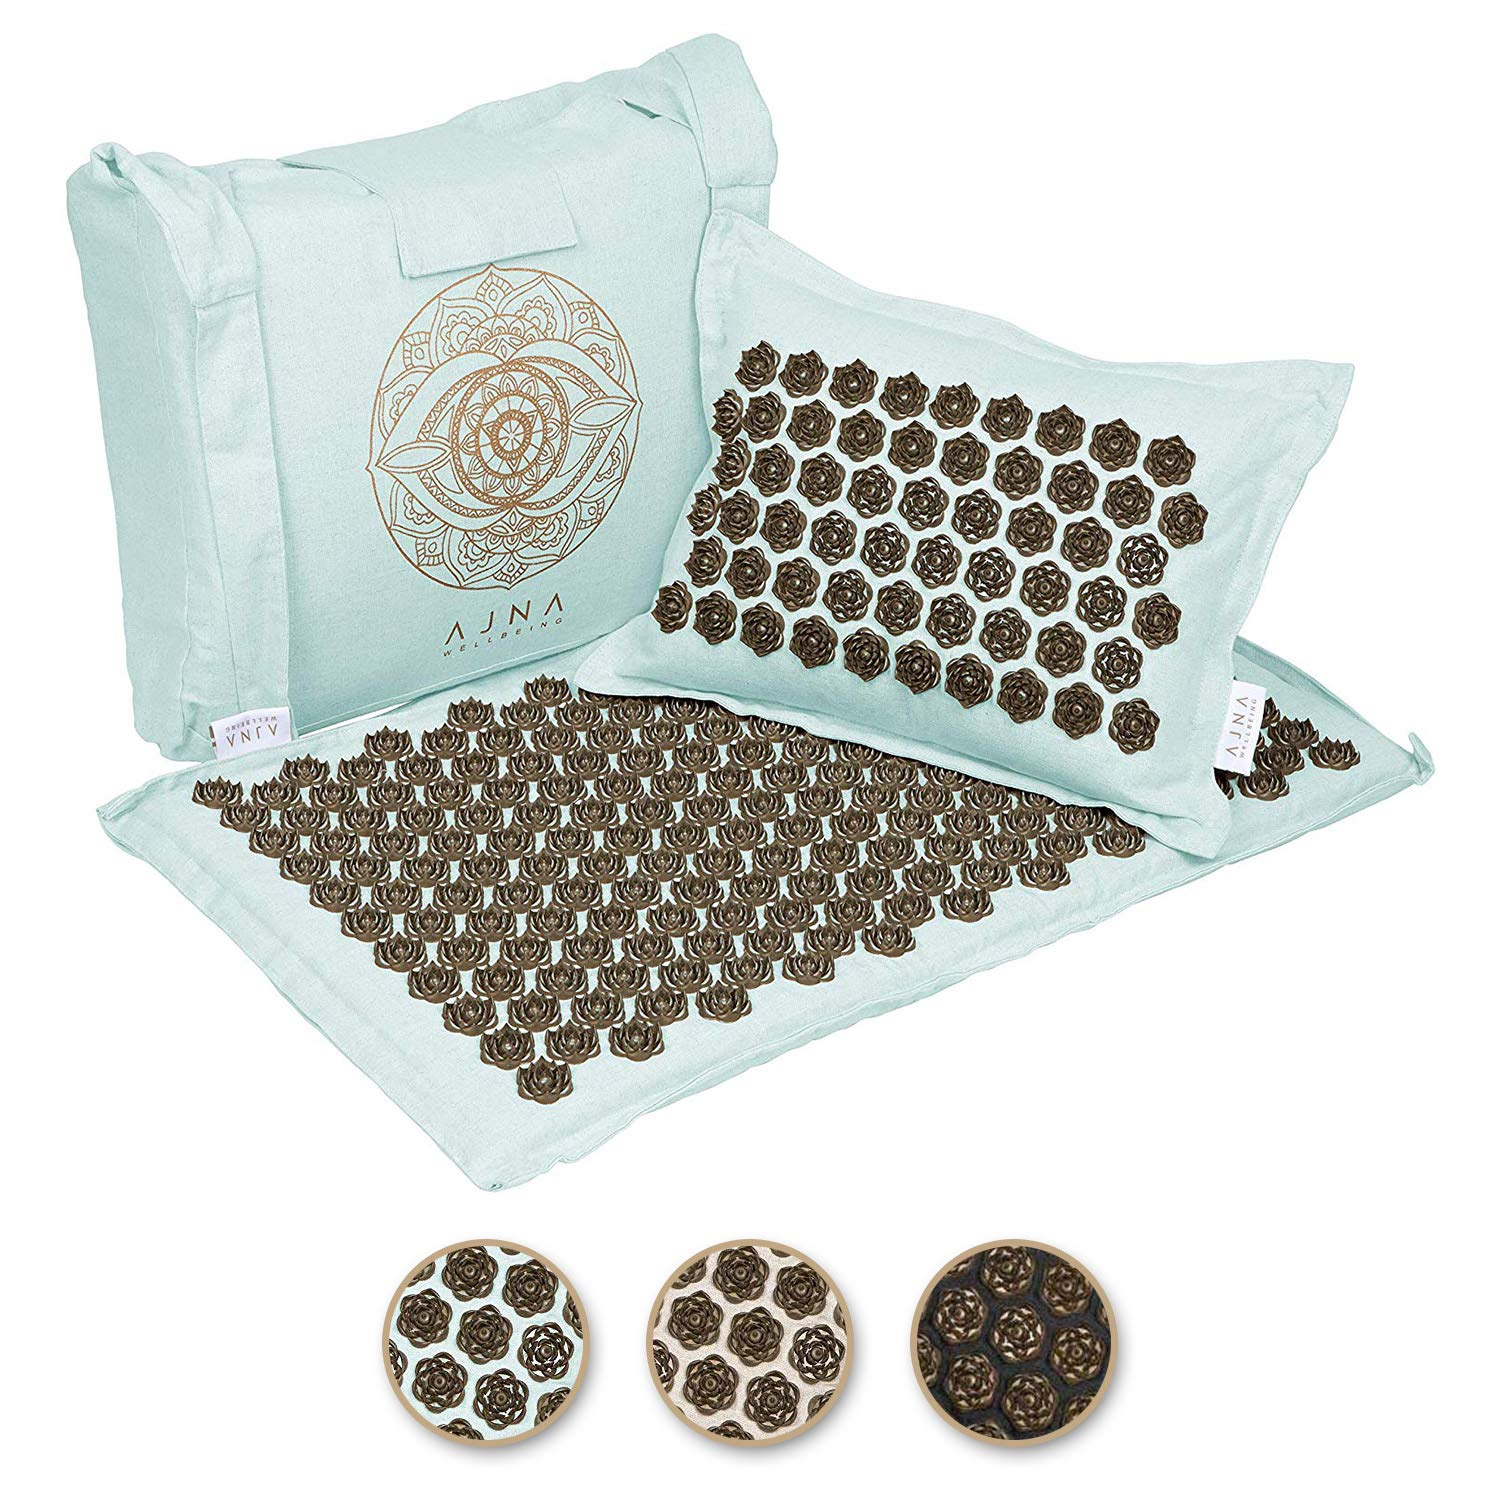 ajna acupressure mat and pillow set natural organic linen cotton acupuncture mat bag back pain relief neck pain relief stress reliever